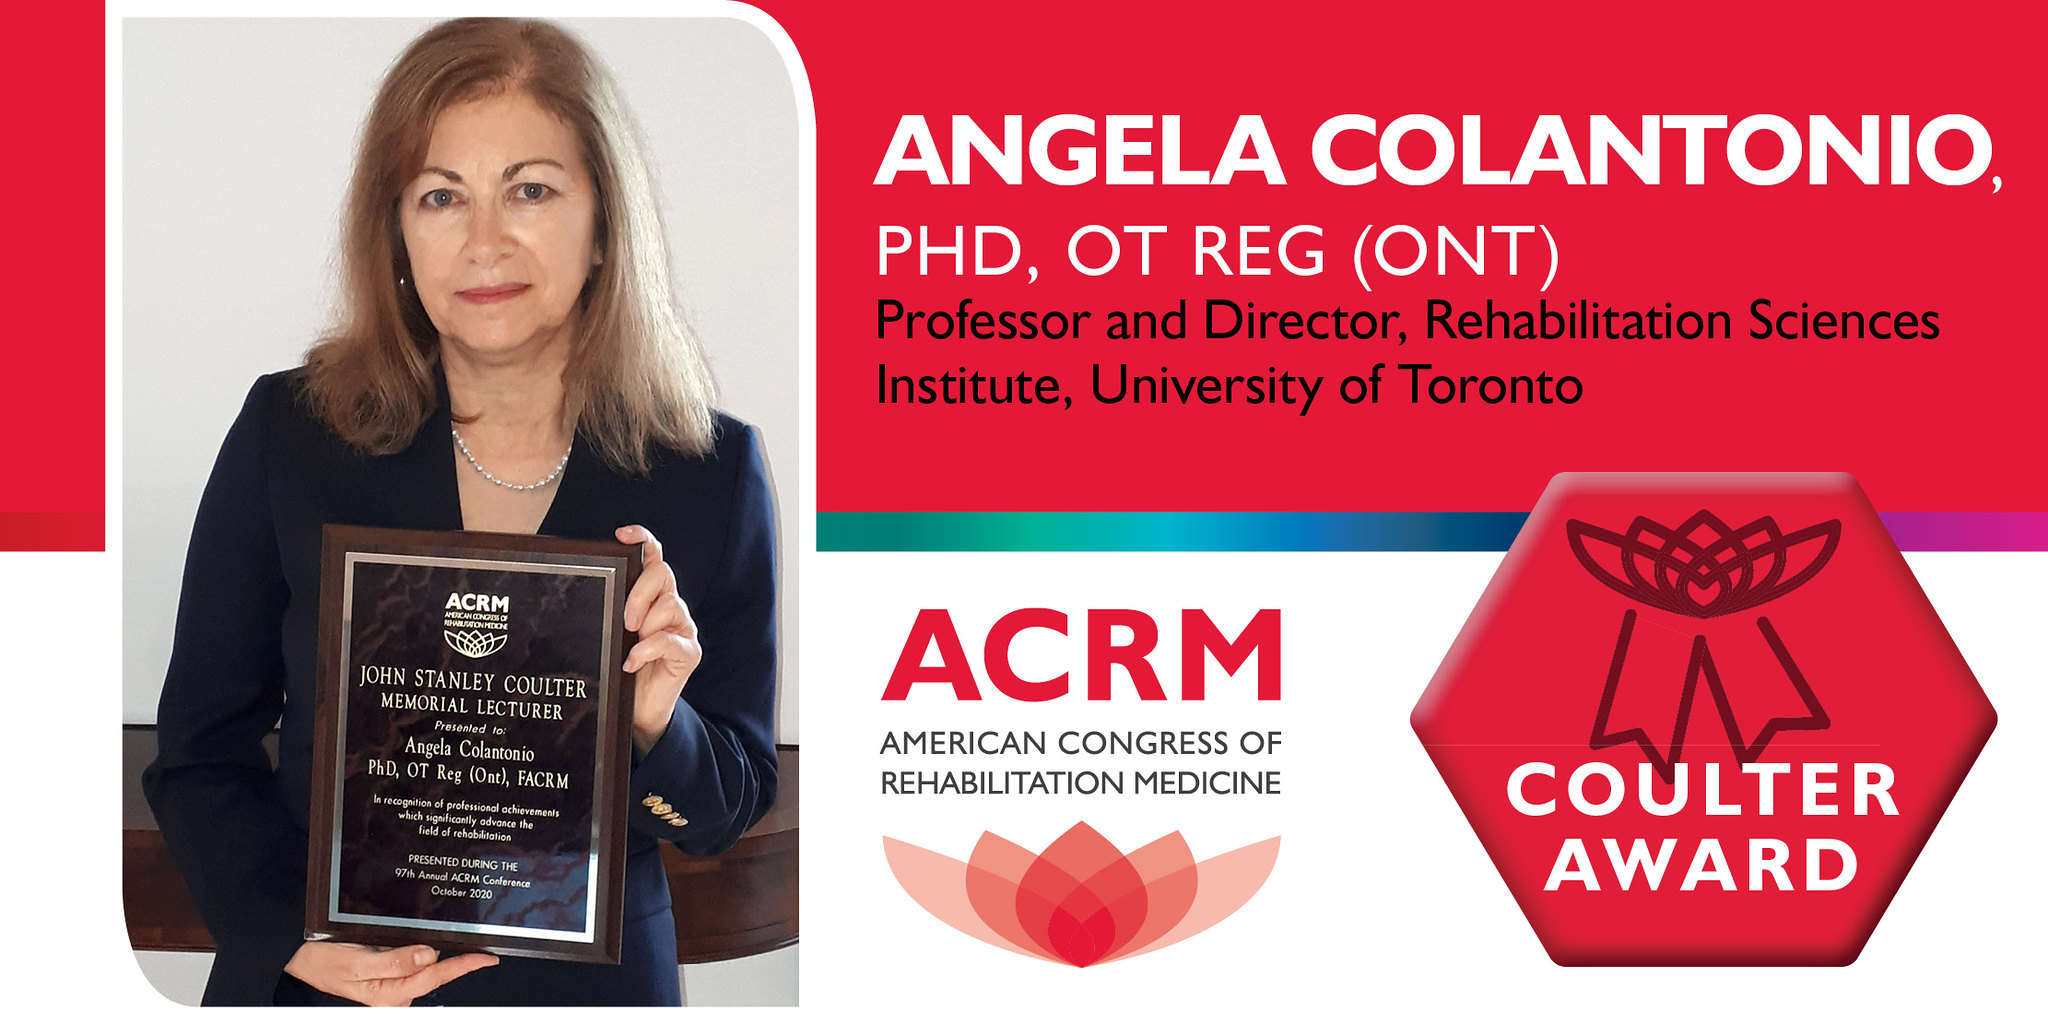 Angela Colantonio is the 2020 recipient of the ACRM John Stanley Coulter Award